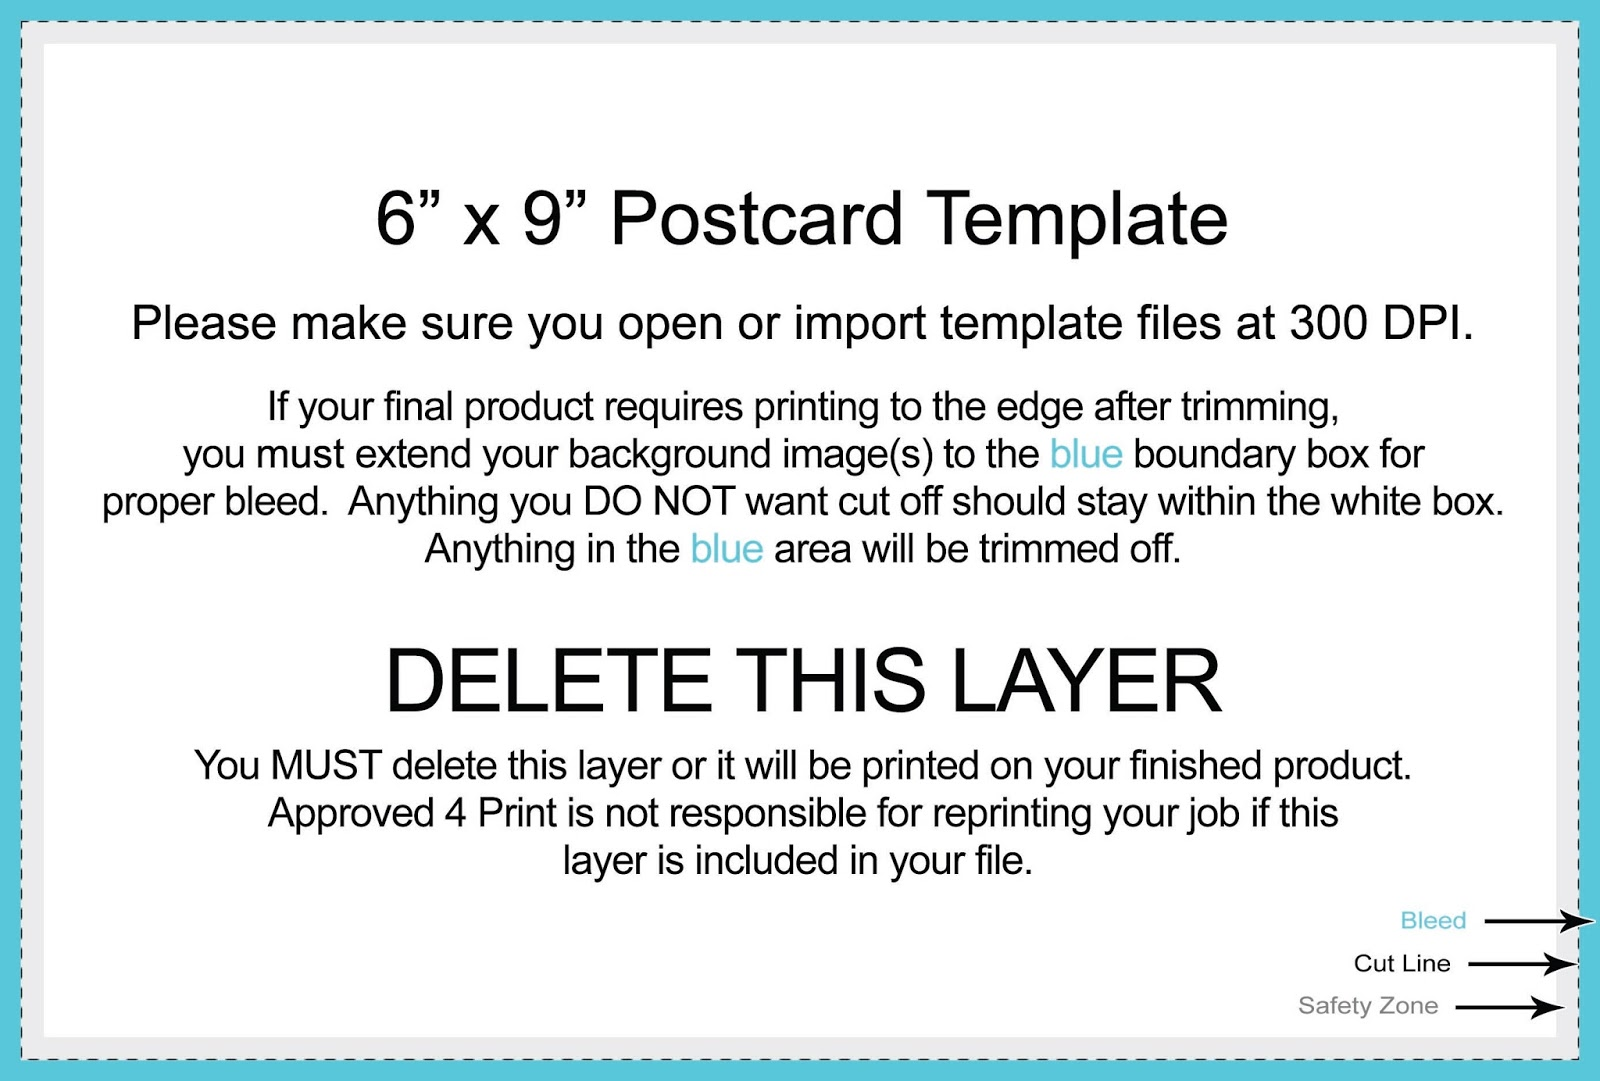 6x9 postcard template photoshop free download d templates 6x9 postcard template photoshop pronofoot35fo Choice Image